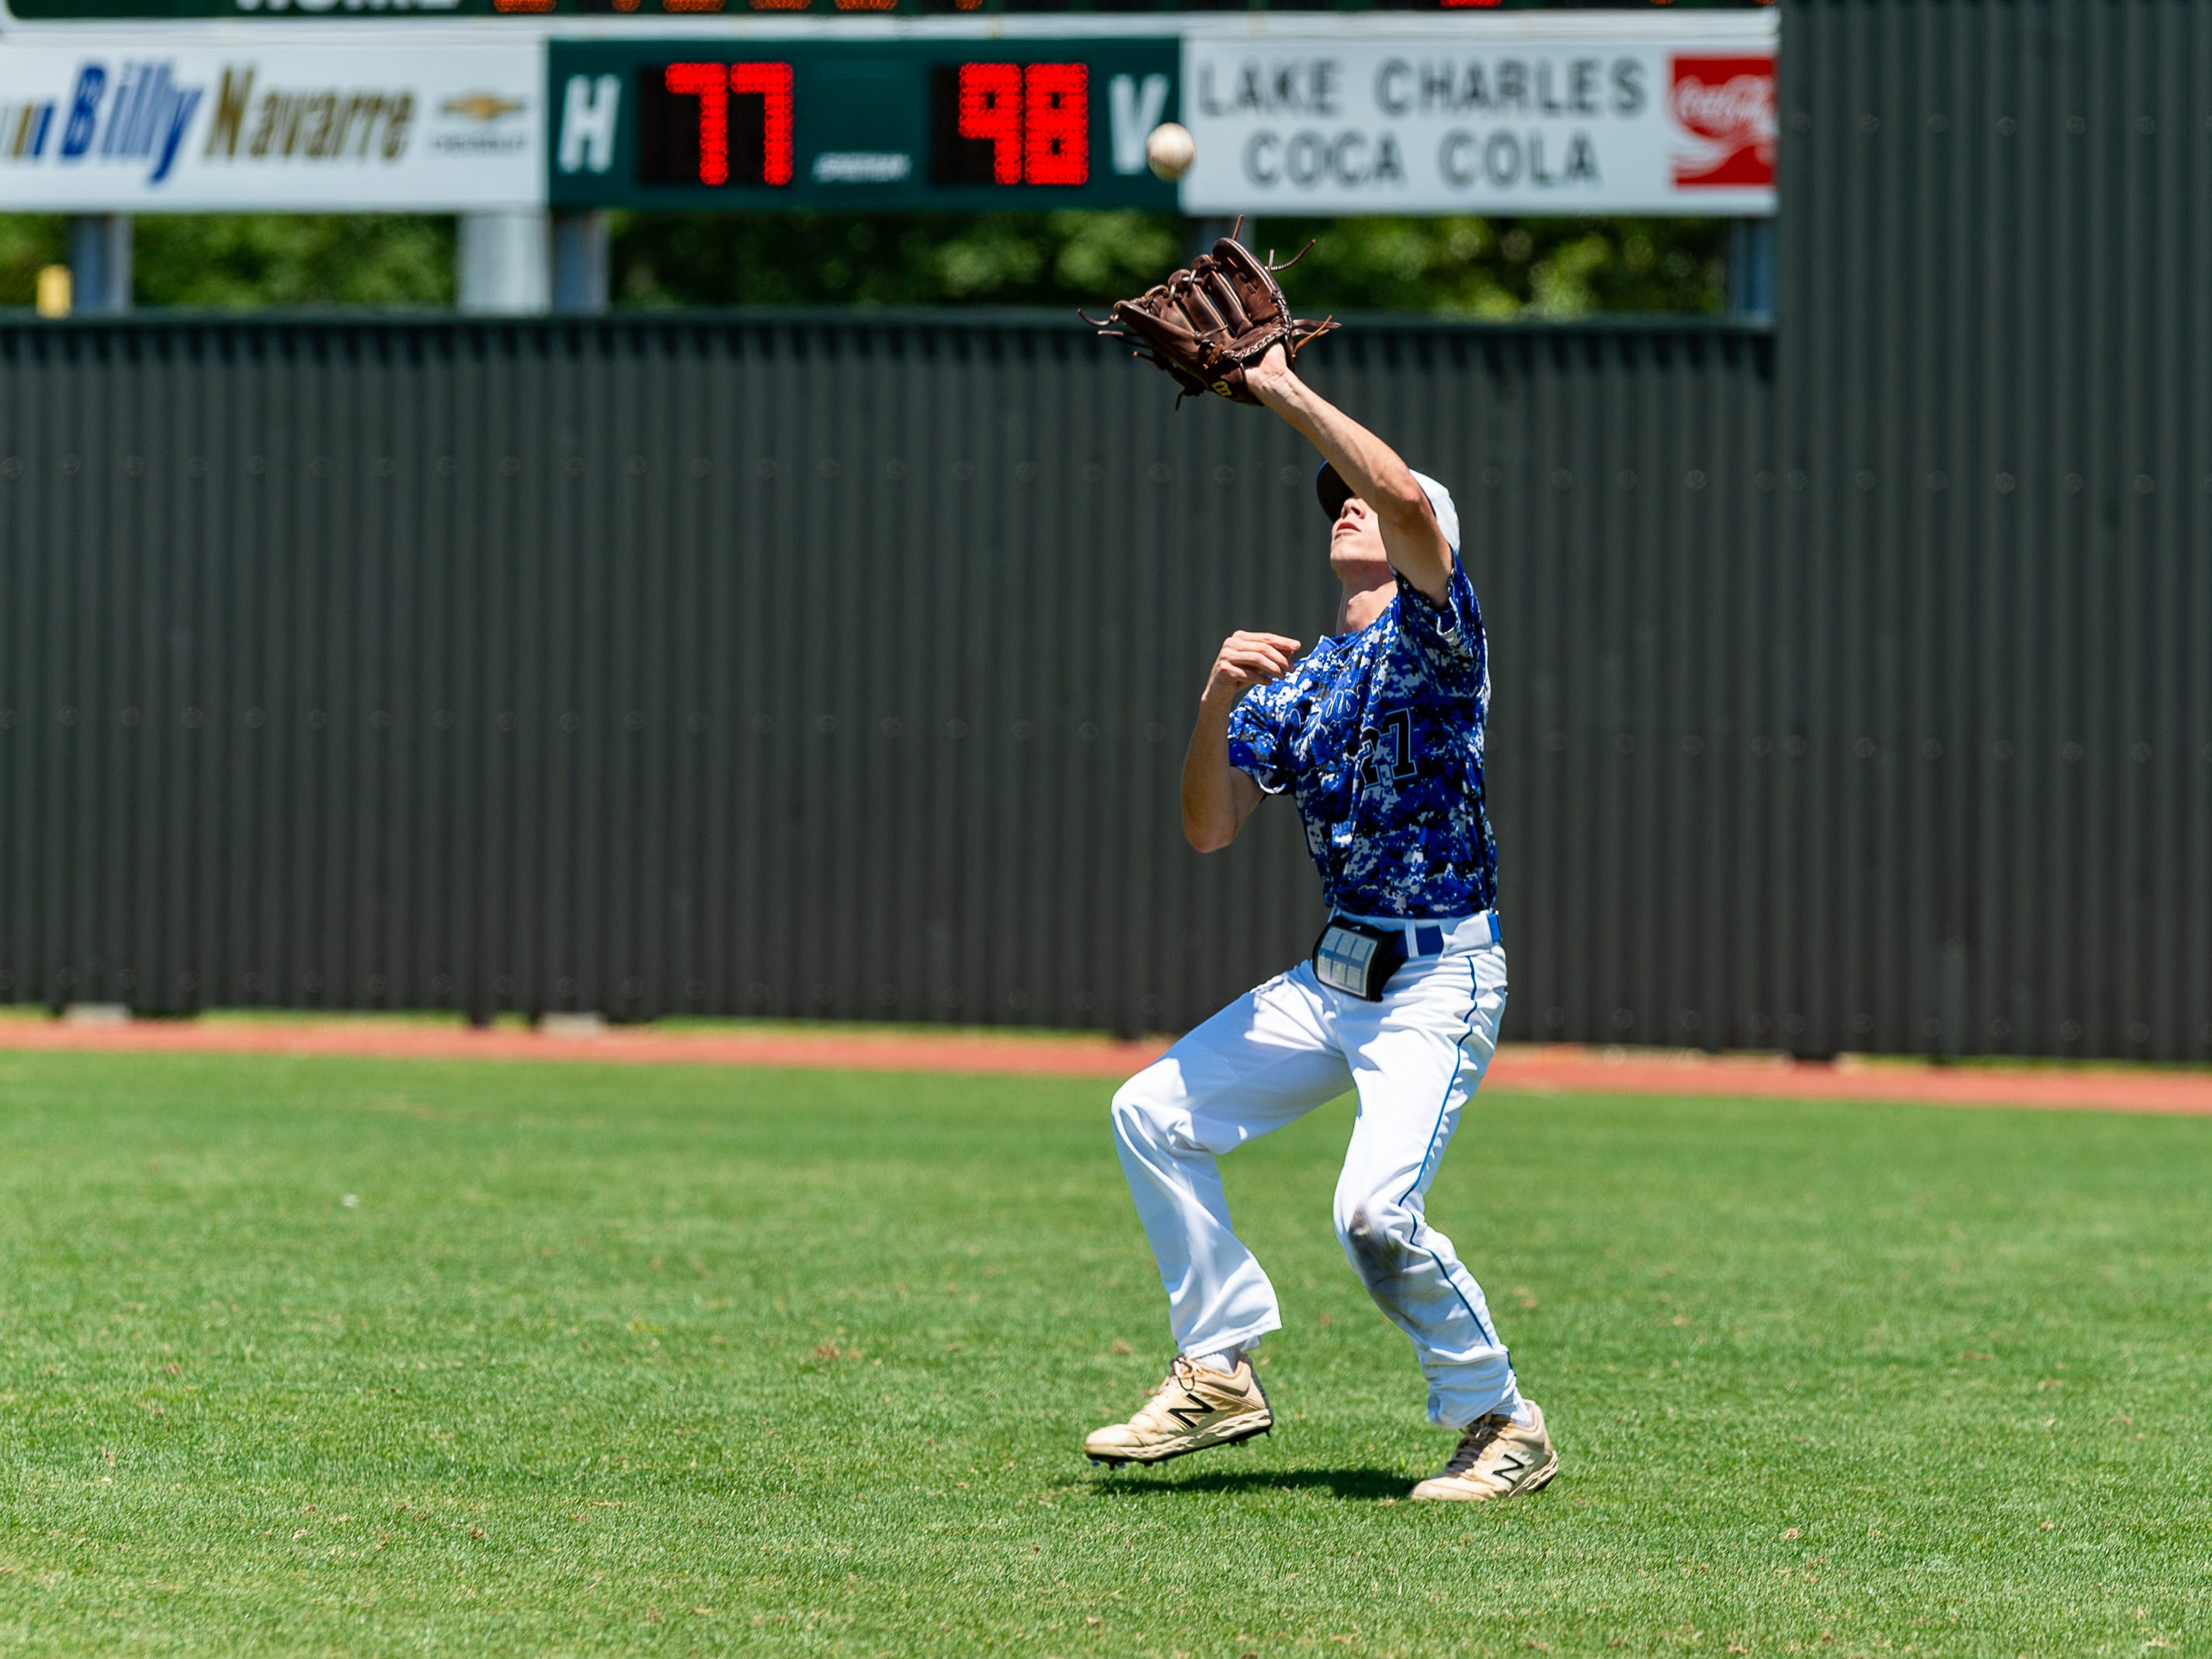 Northside Christian takes on Runnels in the LHSAA State Championship Tournament. Monday, May 13, 2019.